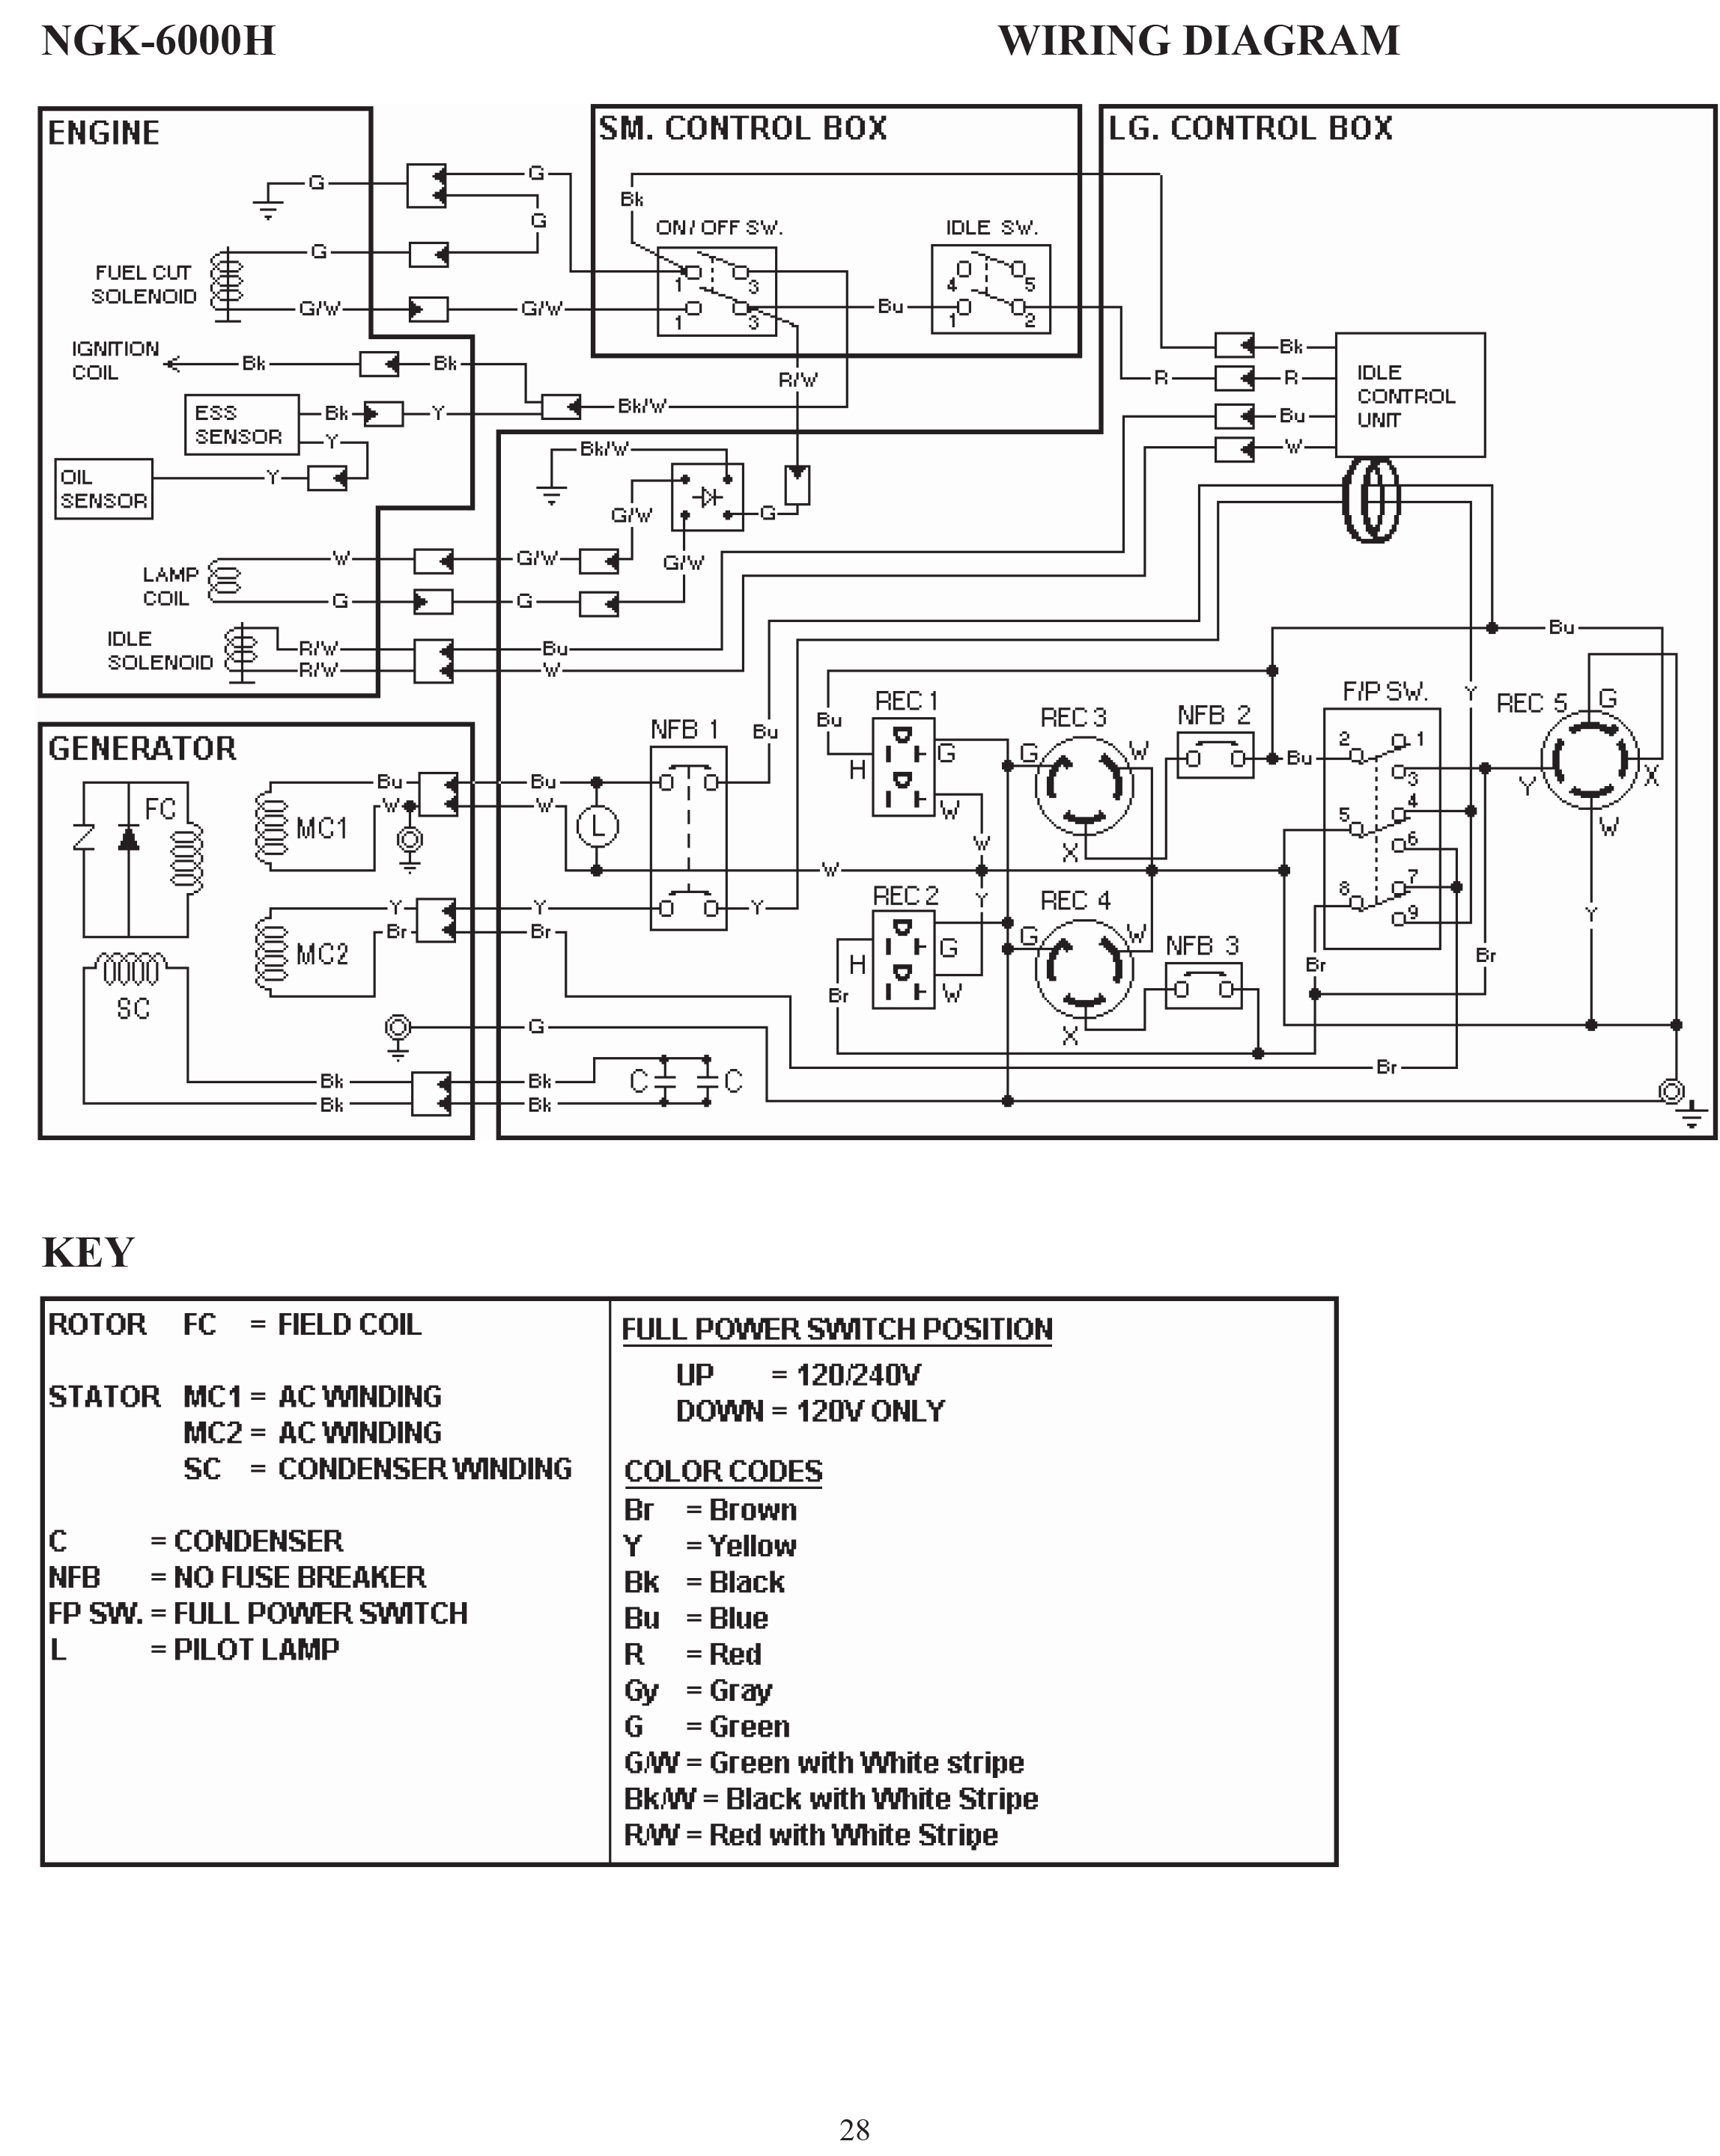 Http Www Justanswer Com Ford 27w69 Looking Wiring Diagram Electric Newage Stamford Alternator 2013 11 06 014756 Ngk Generator Honda Engine Sx460 Avr Price In India